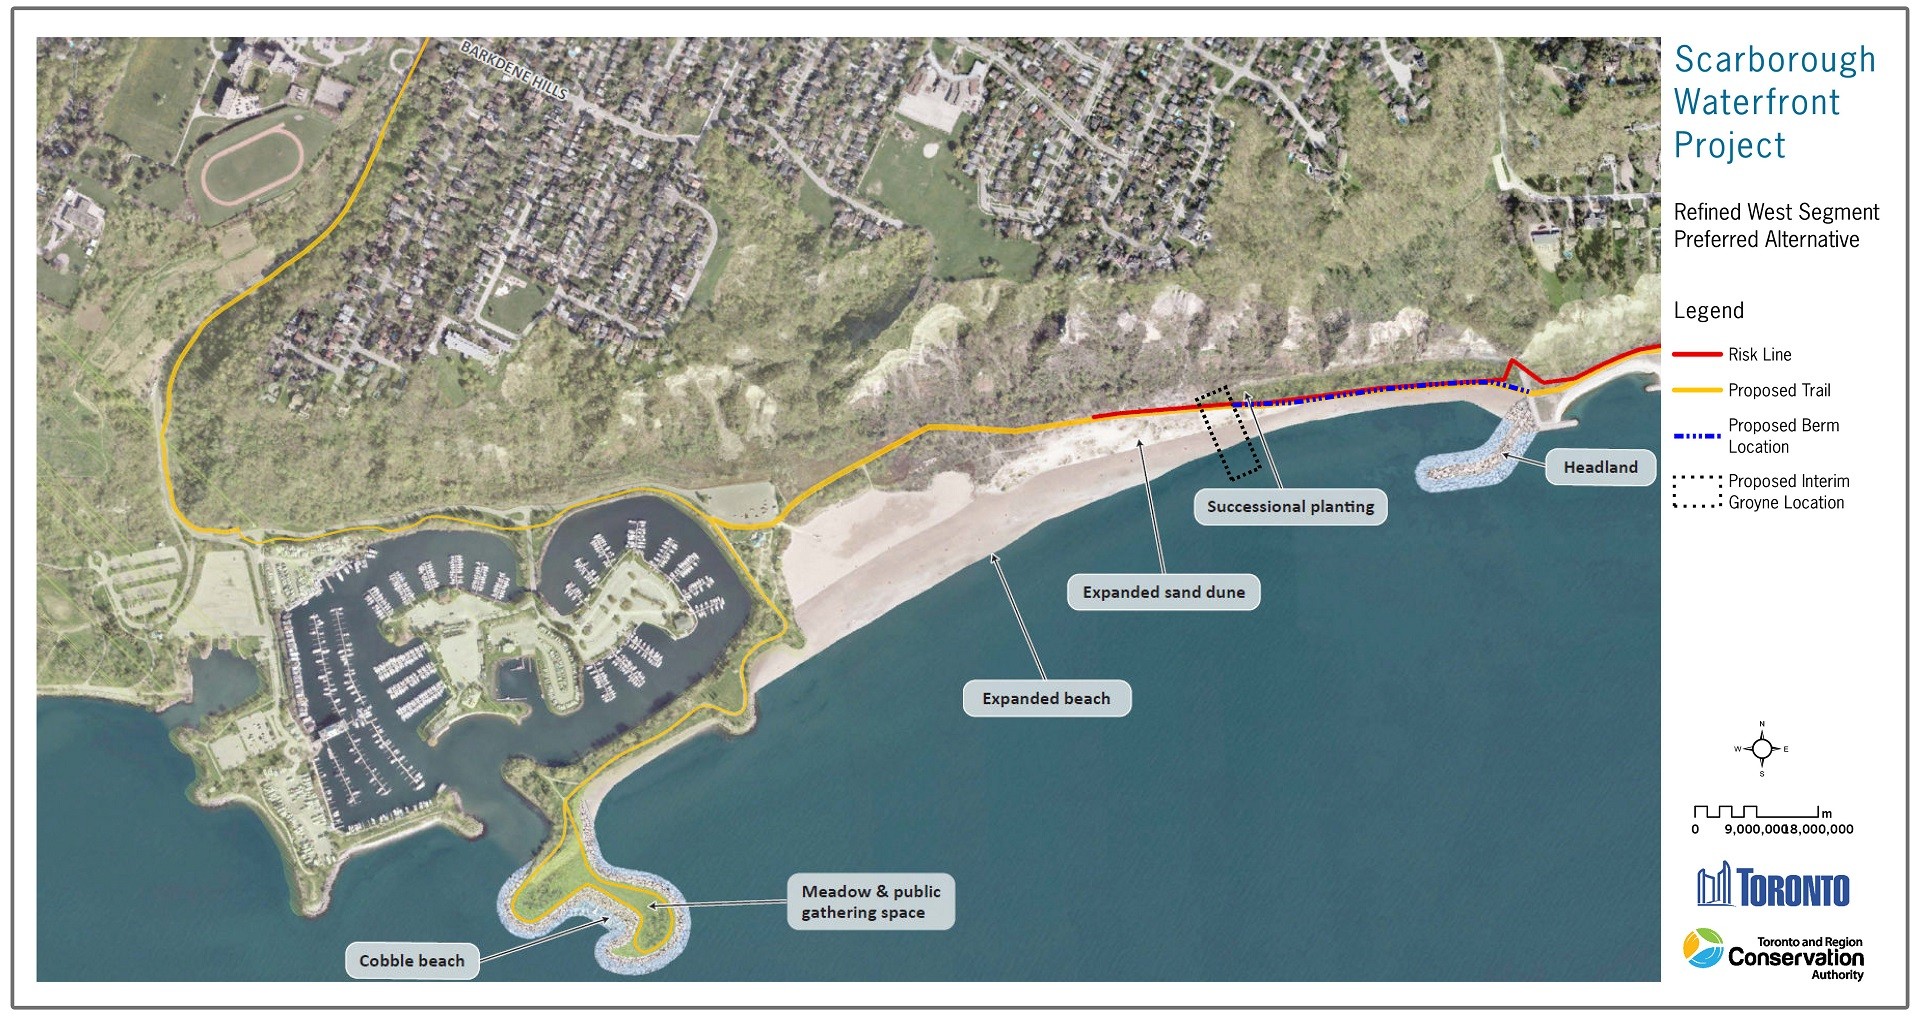 map of Scarborough Waterfront Project west segement